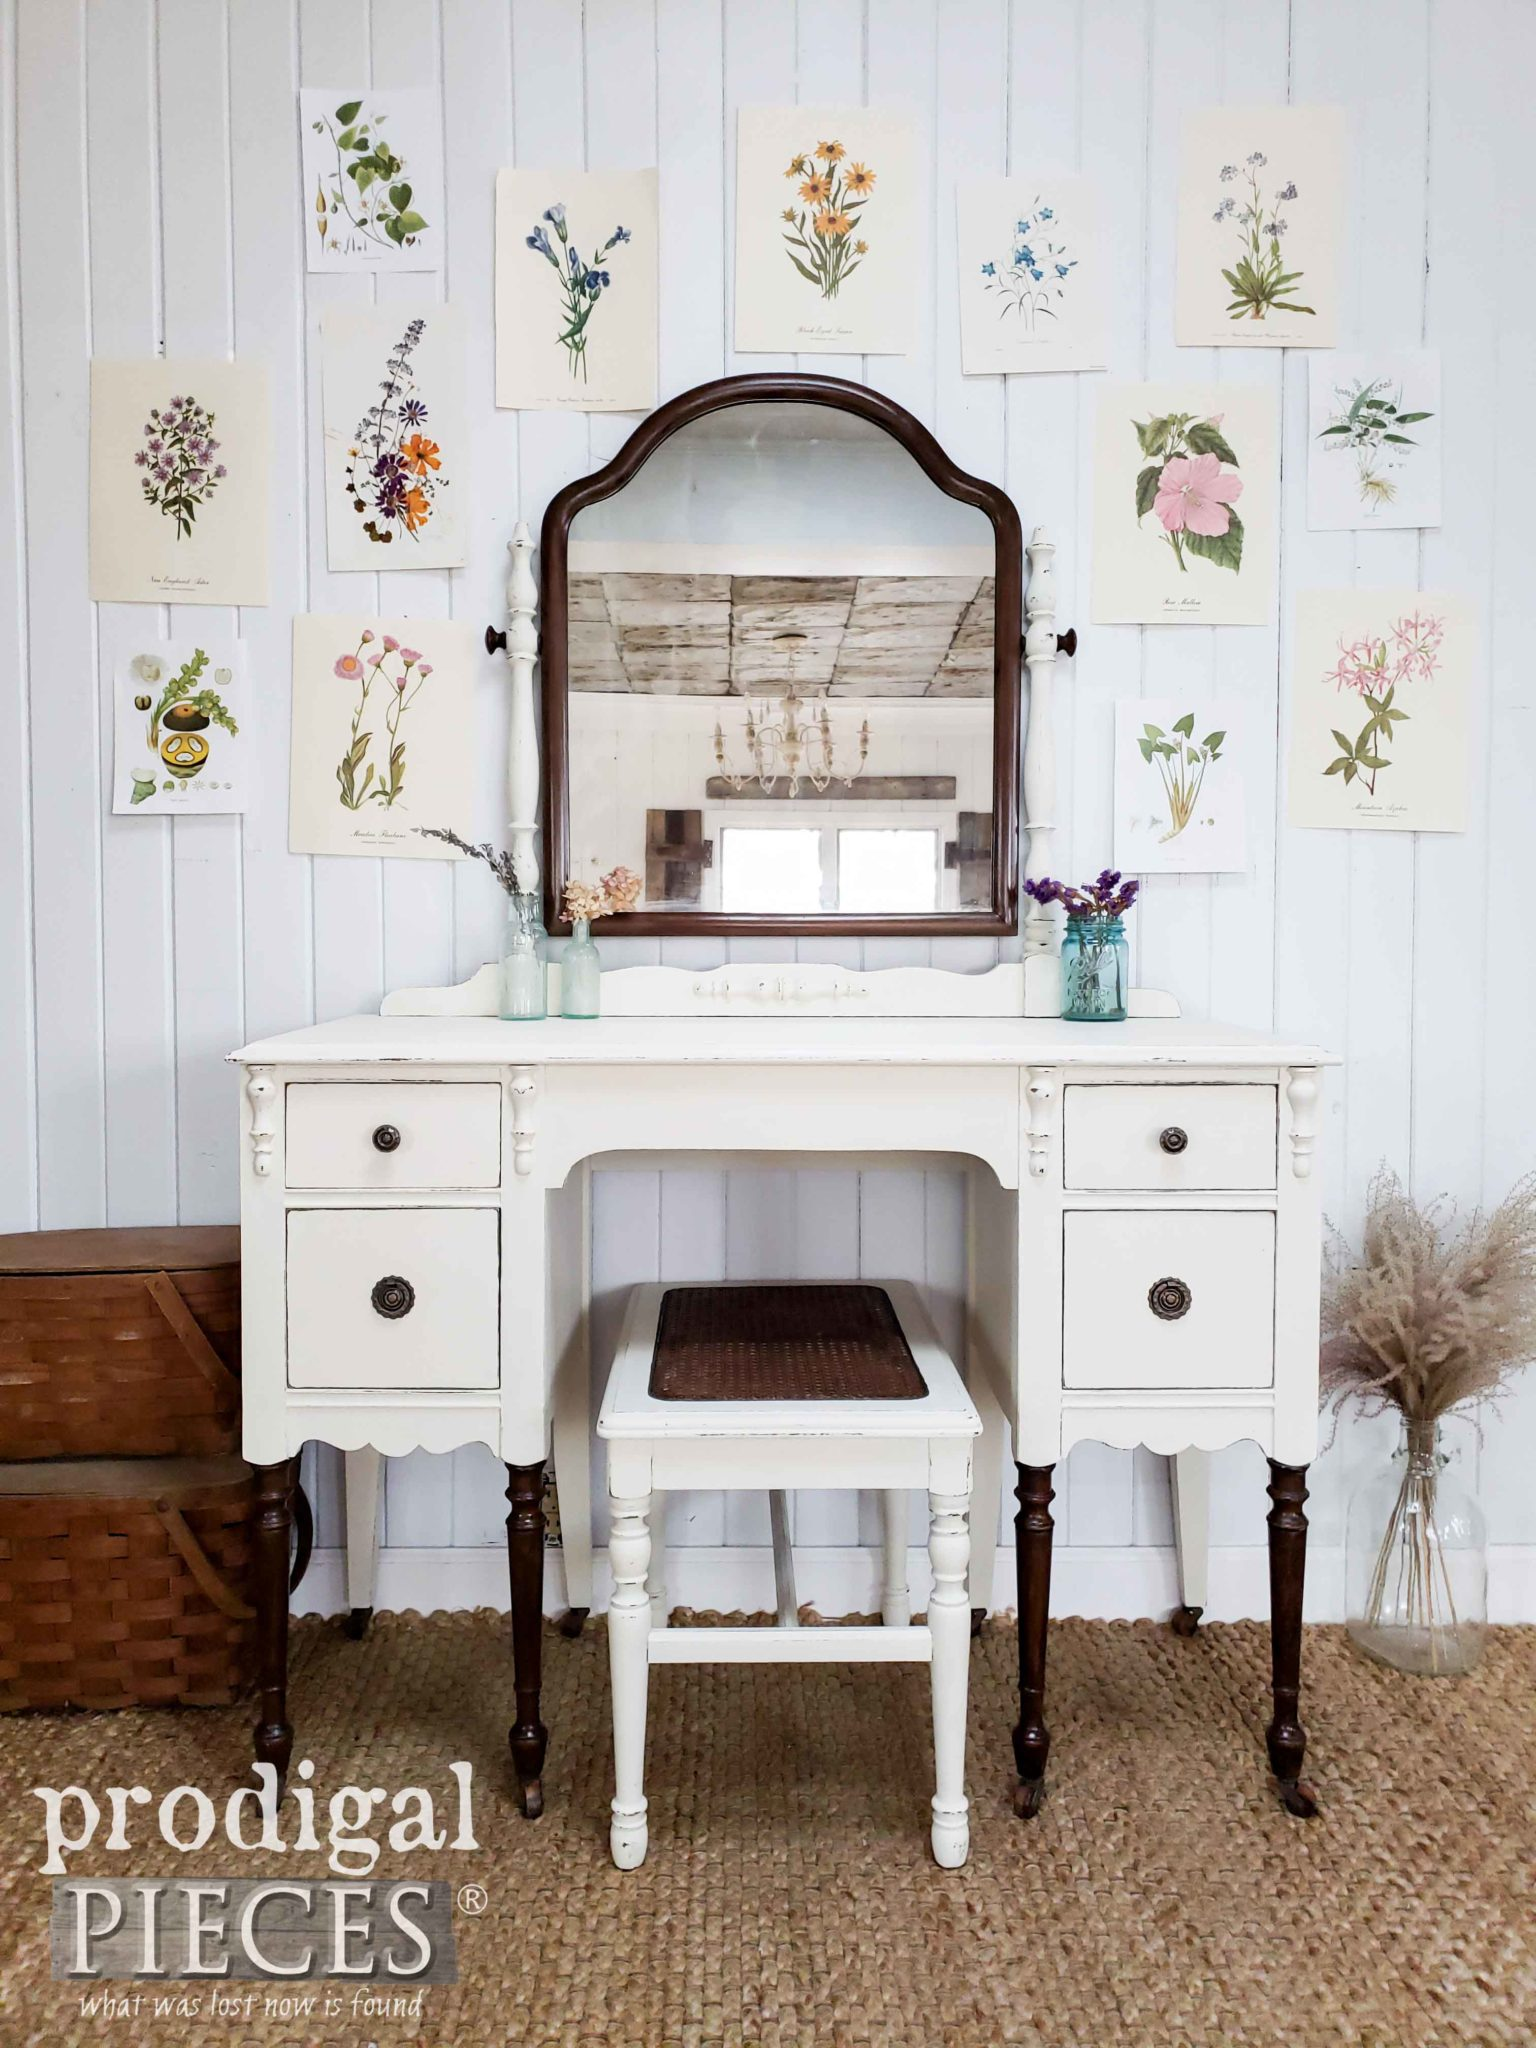 Caned Antique Dressing Table Set with Paint and Stain Makeover by Larissa of Prodigal Pieces | prodigalpieces.com #prodigalpieces #furniture #diy #home #homedecor #homedecorideas #farmhouse